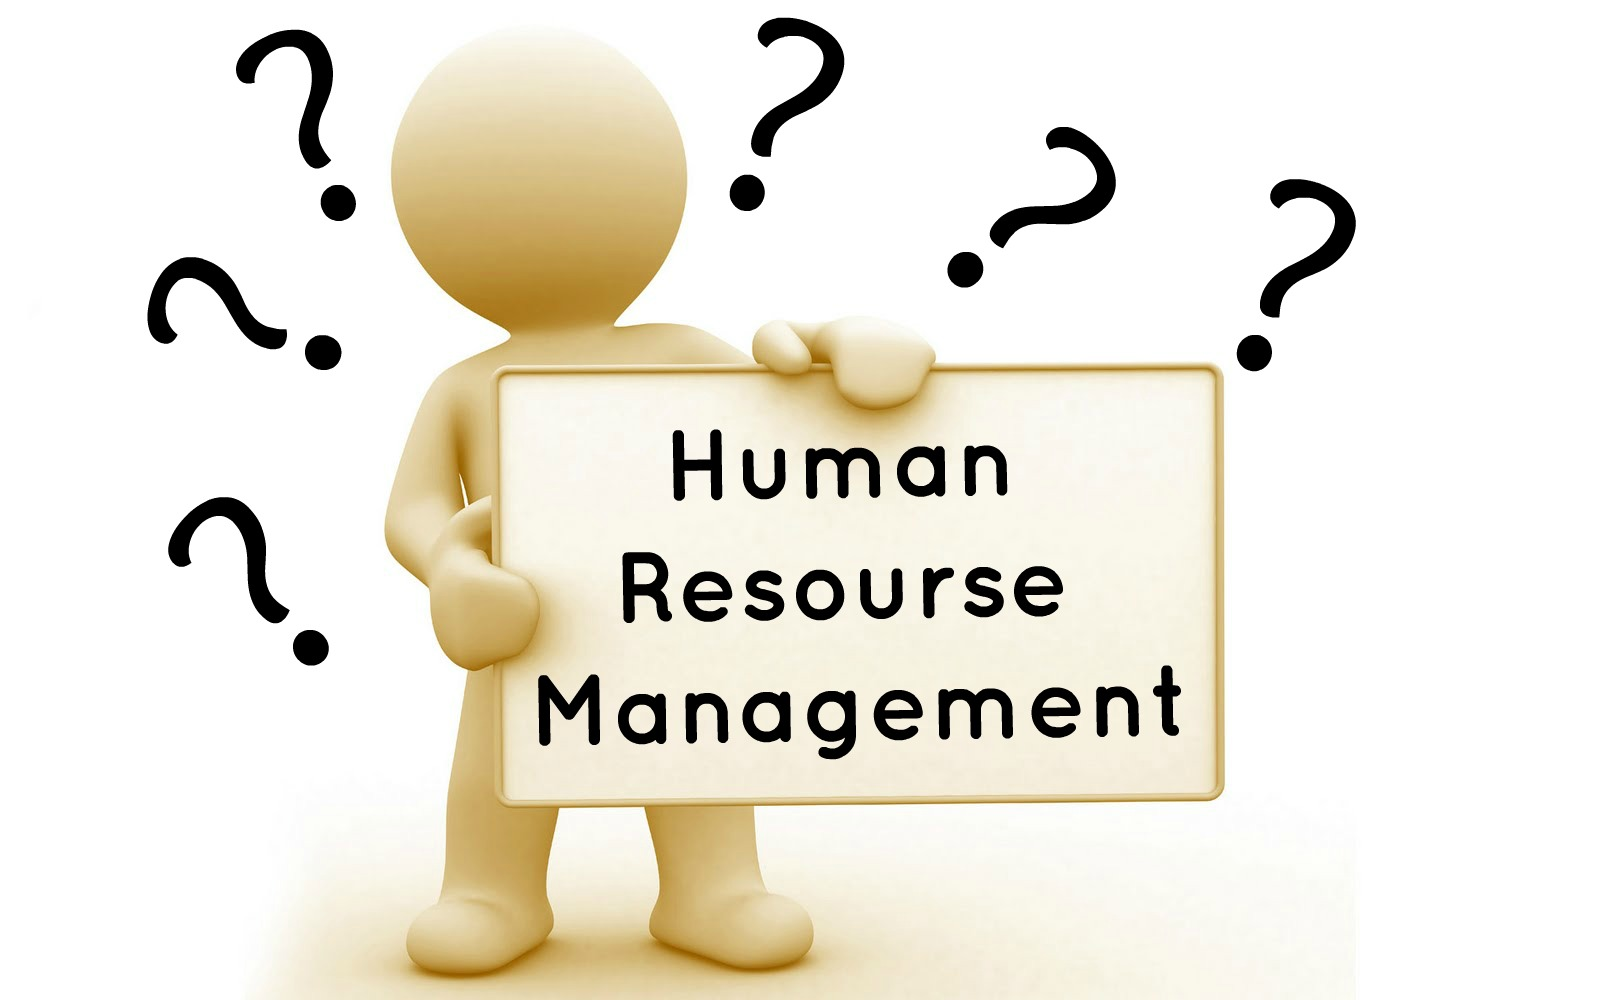 human resource managemeny Human resource management functions are ideally positioned near the theoretic center of the organization, with access to all areas of the business.